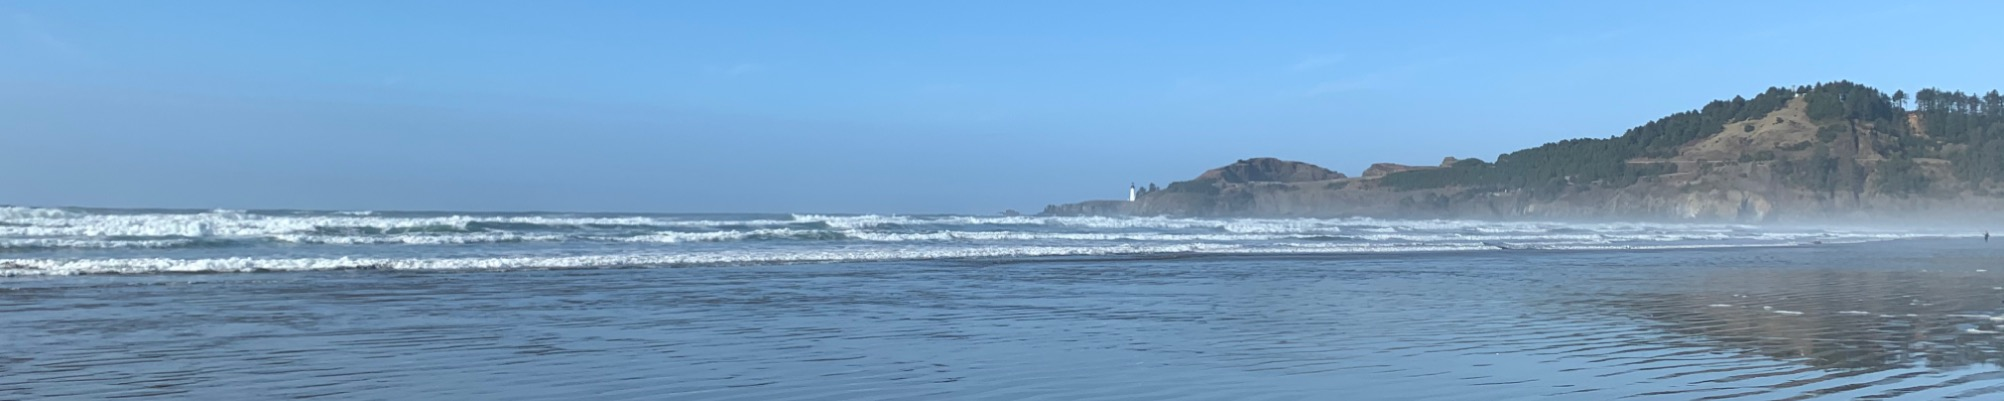 landscape photo of the Oregon coast, with blue sky, waves rolling into shore, and a long-distance view of Yaquina Head light house